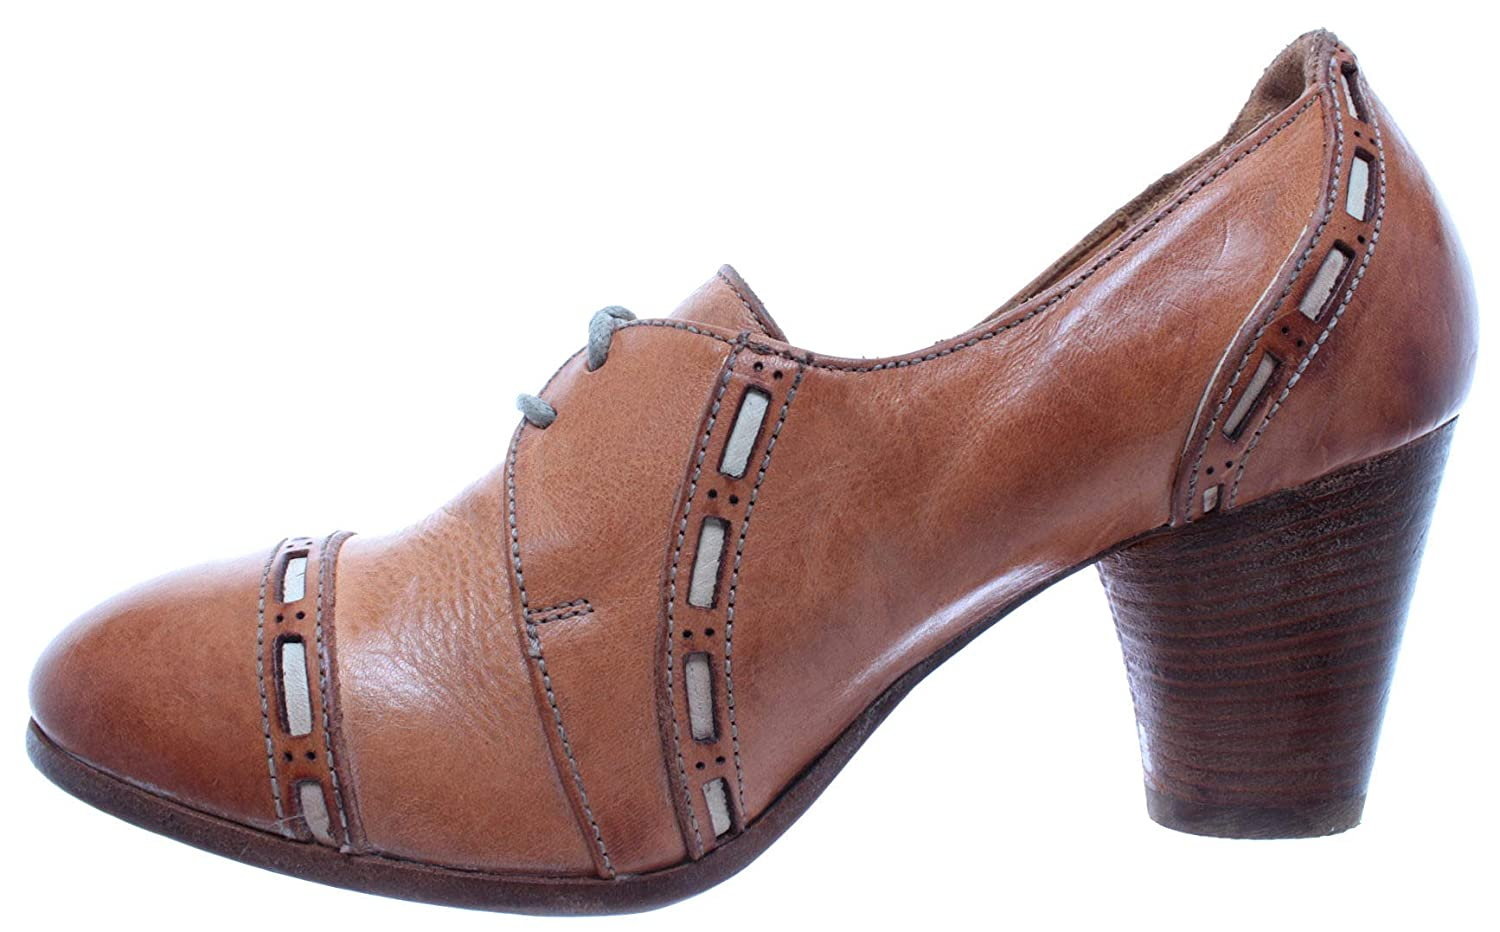 a98aa78df5c62c MOMA Chaussures Femmes Escarpins Nappa Lux Bone Cuir Beige Vintage Made in  Italy: Amazon.fr: Chaussures et Sacs